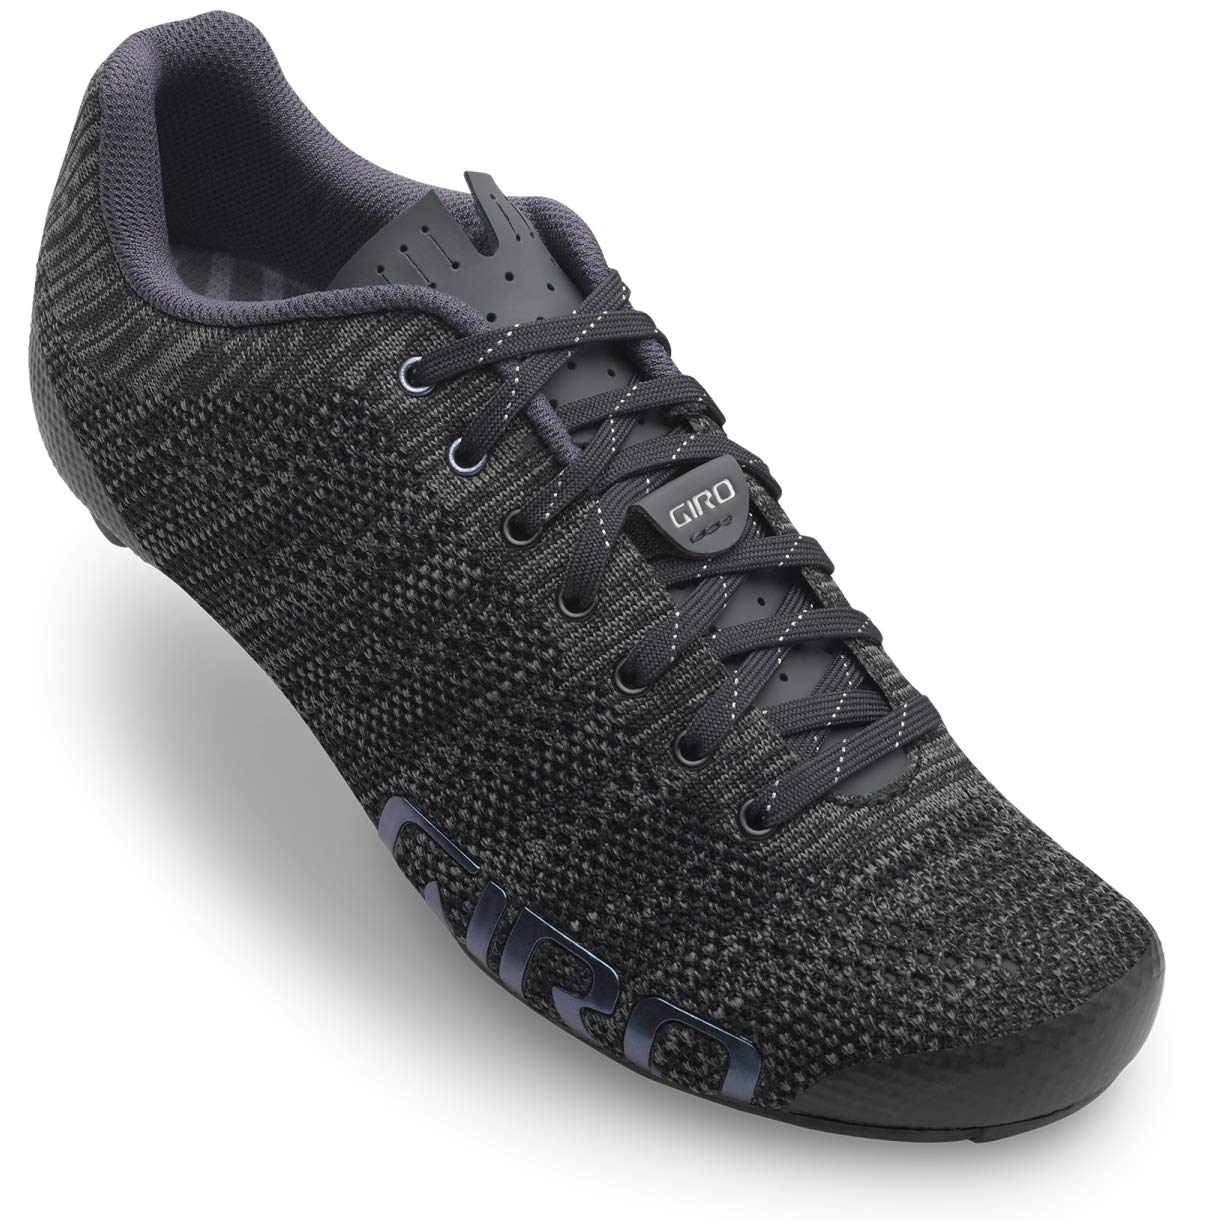 Giro Empire E70 Knit Cycling Shoe - Women's Black Heather 39.5 by Giro